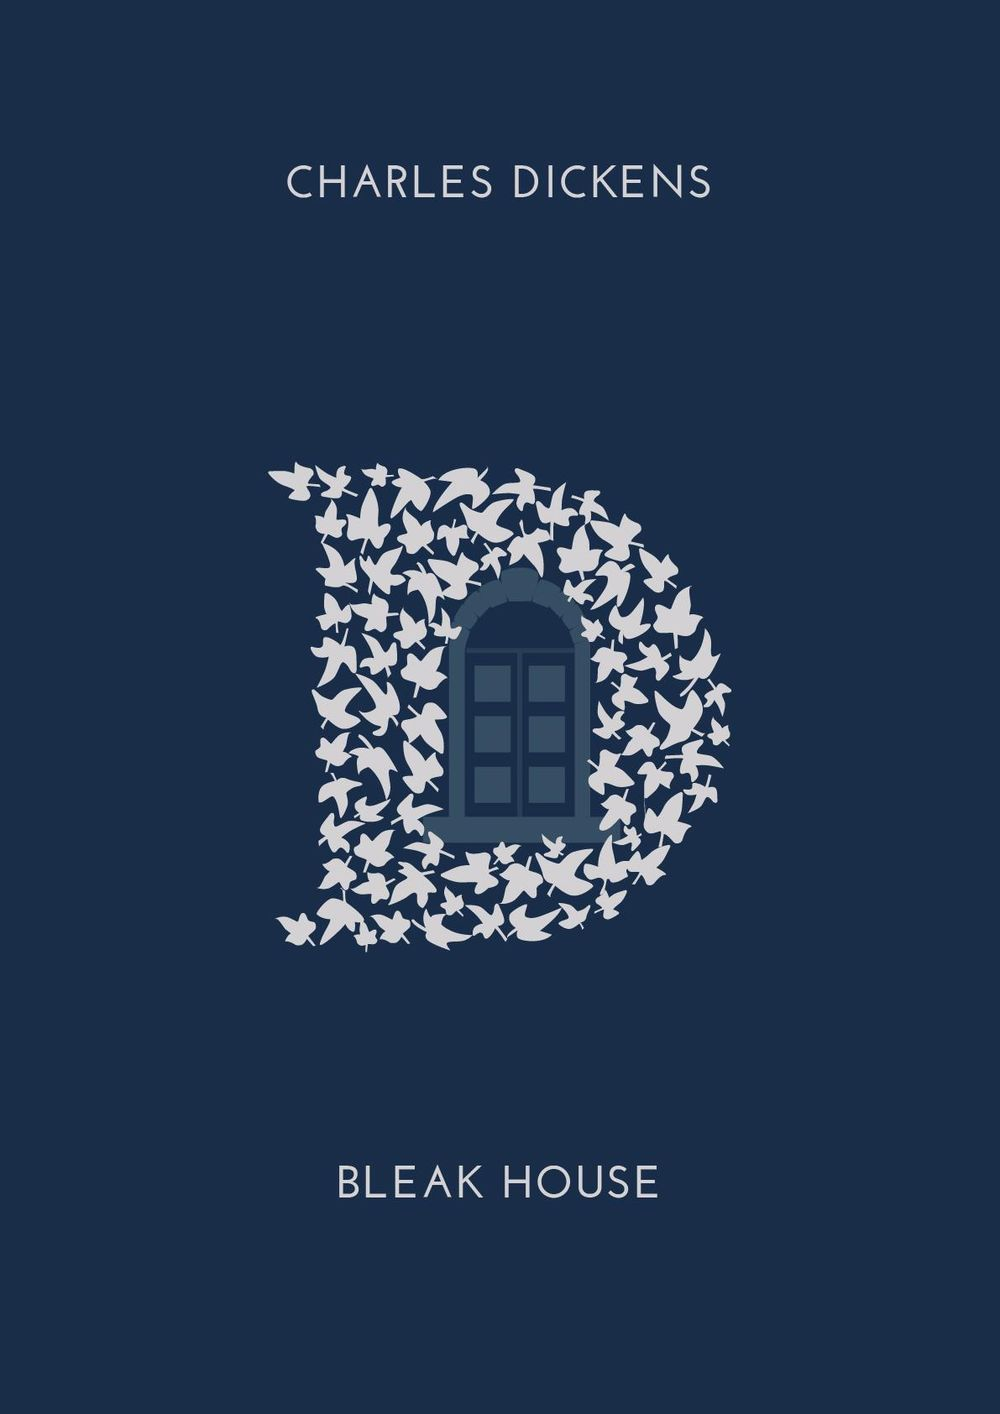 Book Cover for 'Bleak House' of Charles Dickens - image 3 - student project